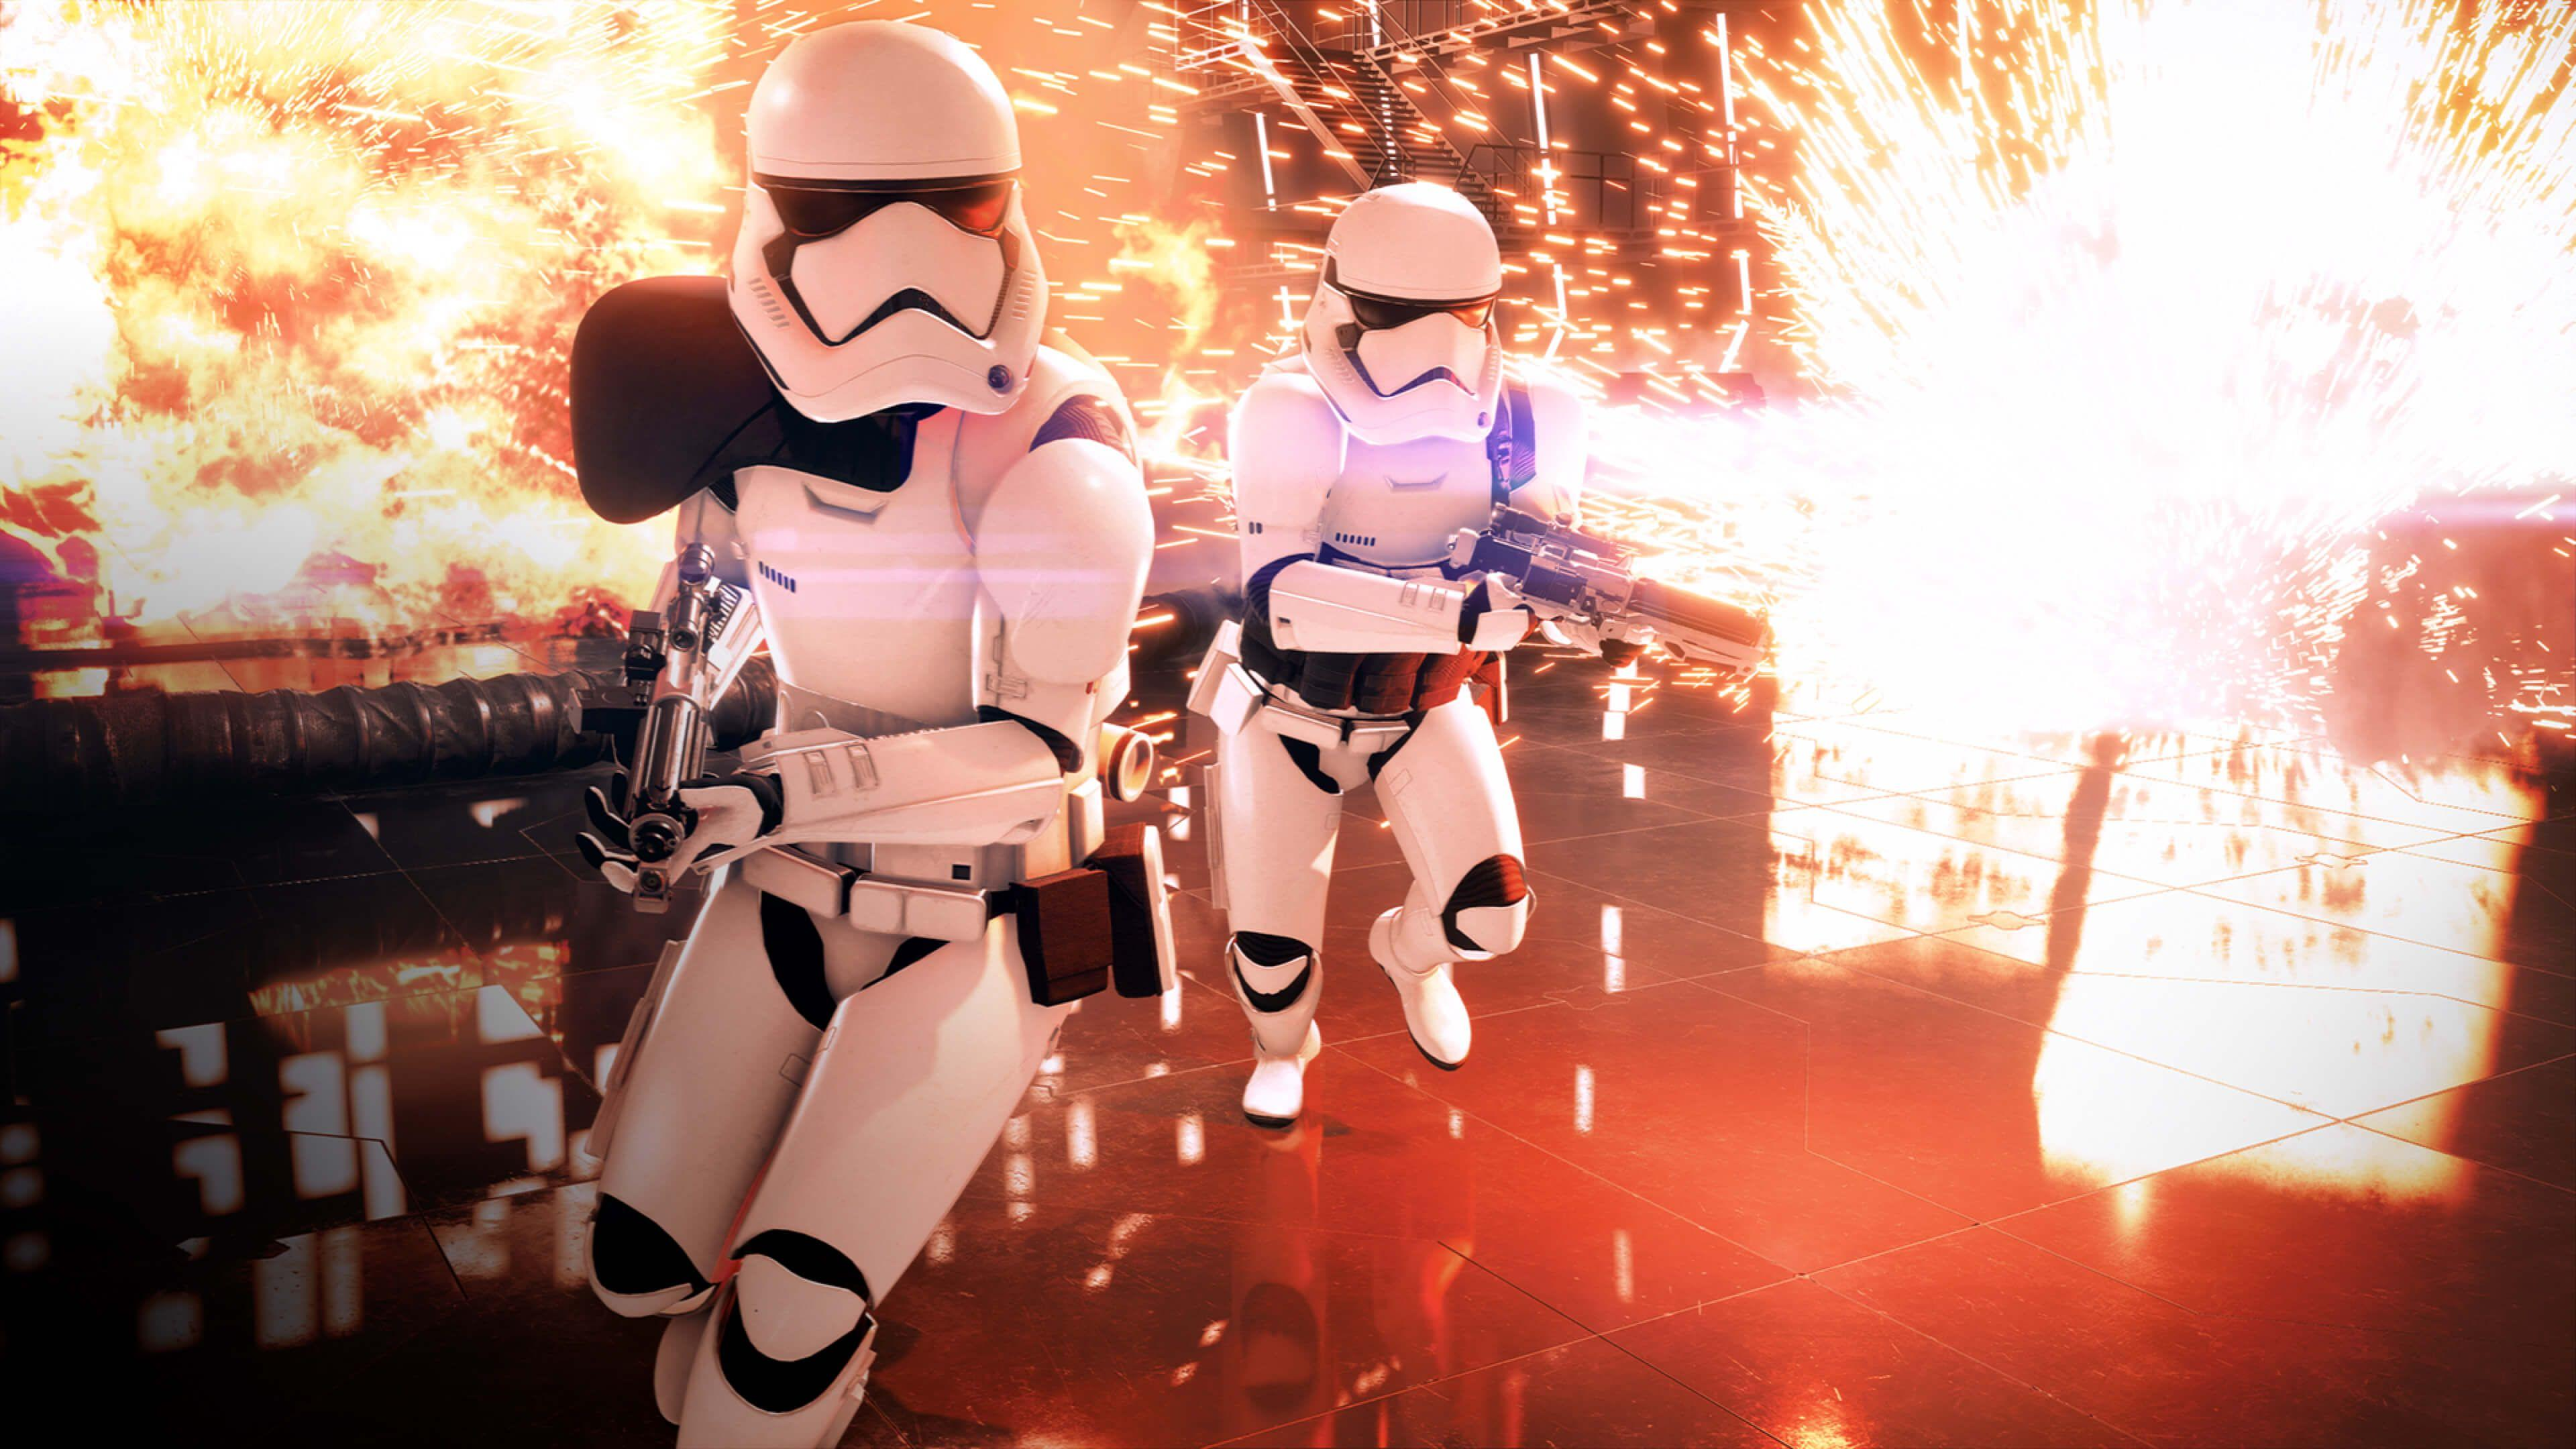 Star Wars Battlefront II hi-res wallpapers I scraped from EA site ...